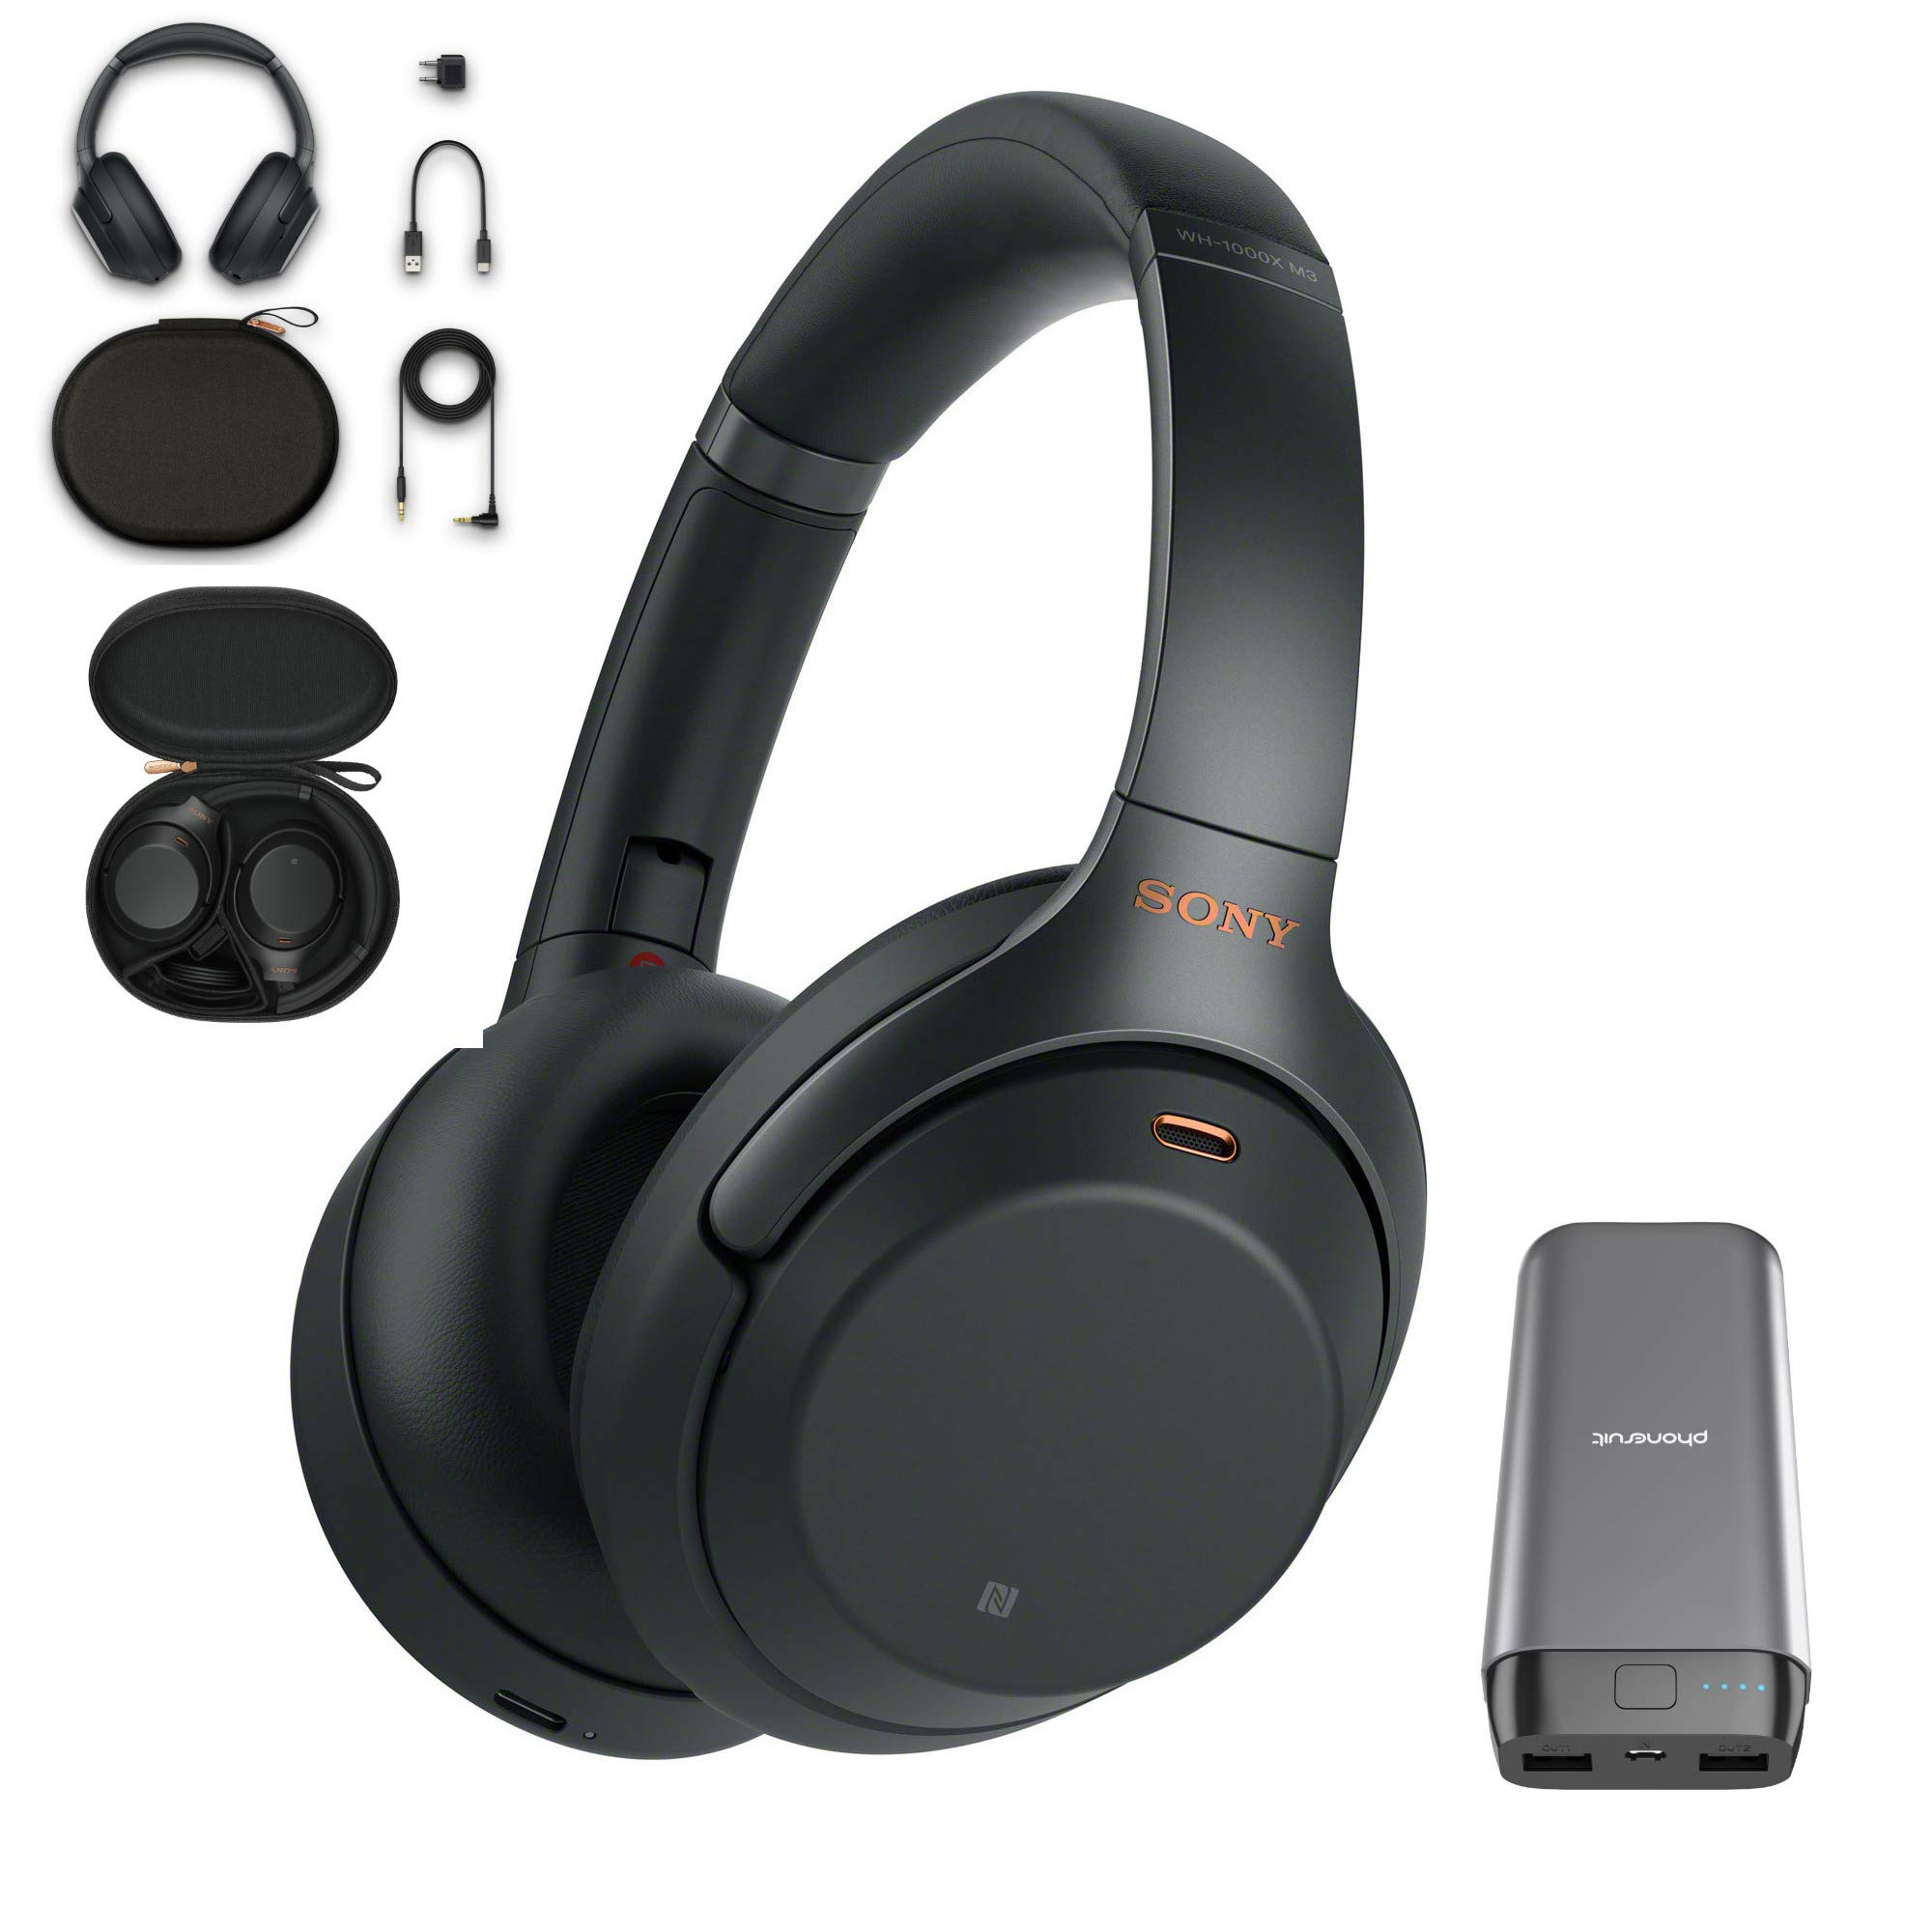 Sony WH-1000XM3 Wireless Noise Canceling Over Ear Headphones with voice assistant, Black (WH-1000XM3/B) with 20,000mAh High Capacity Portable Power Bank by Sony